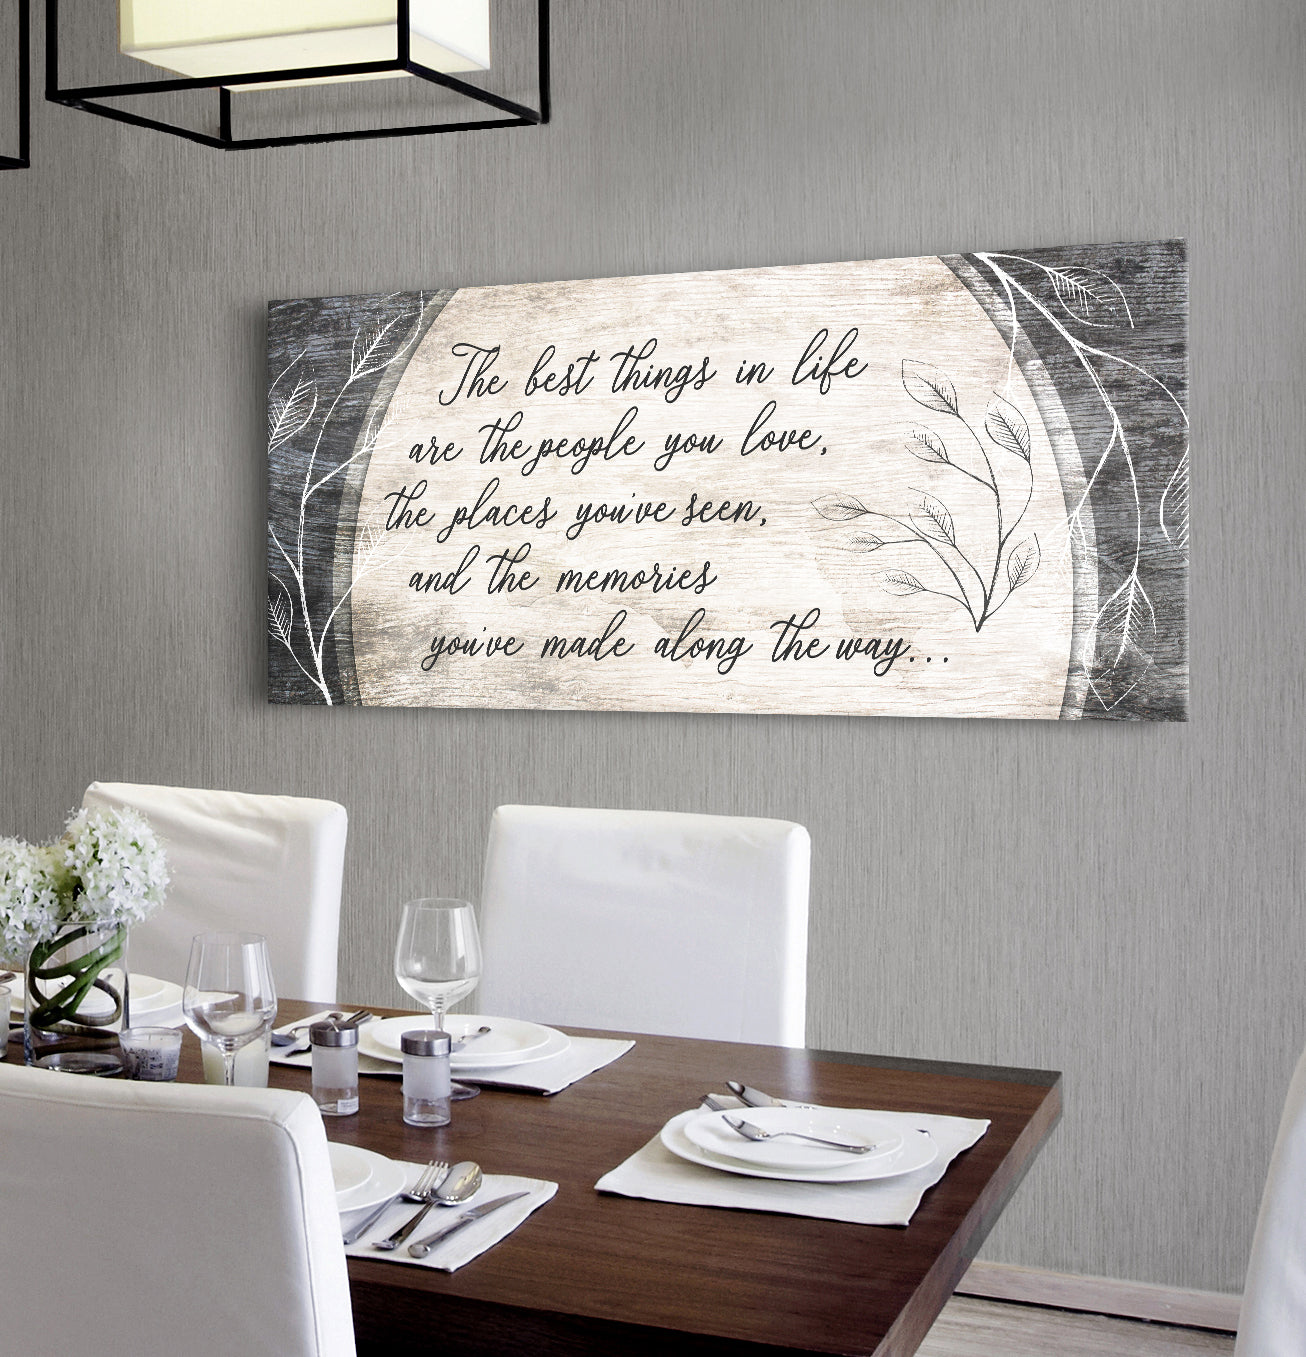 Home Decor Wall Art: The Best Things In Life Are The People You Love (